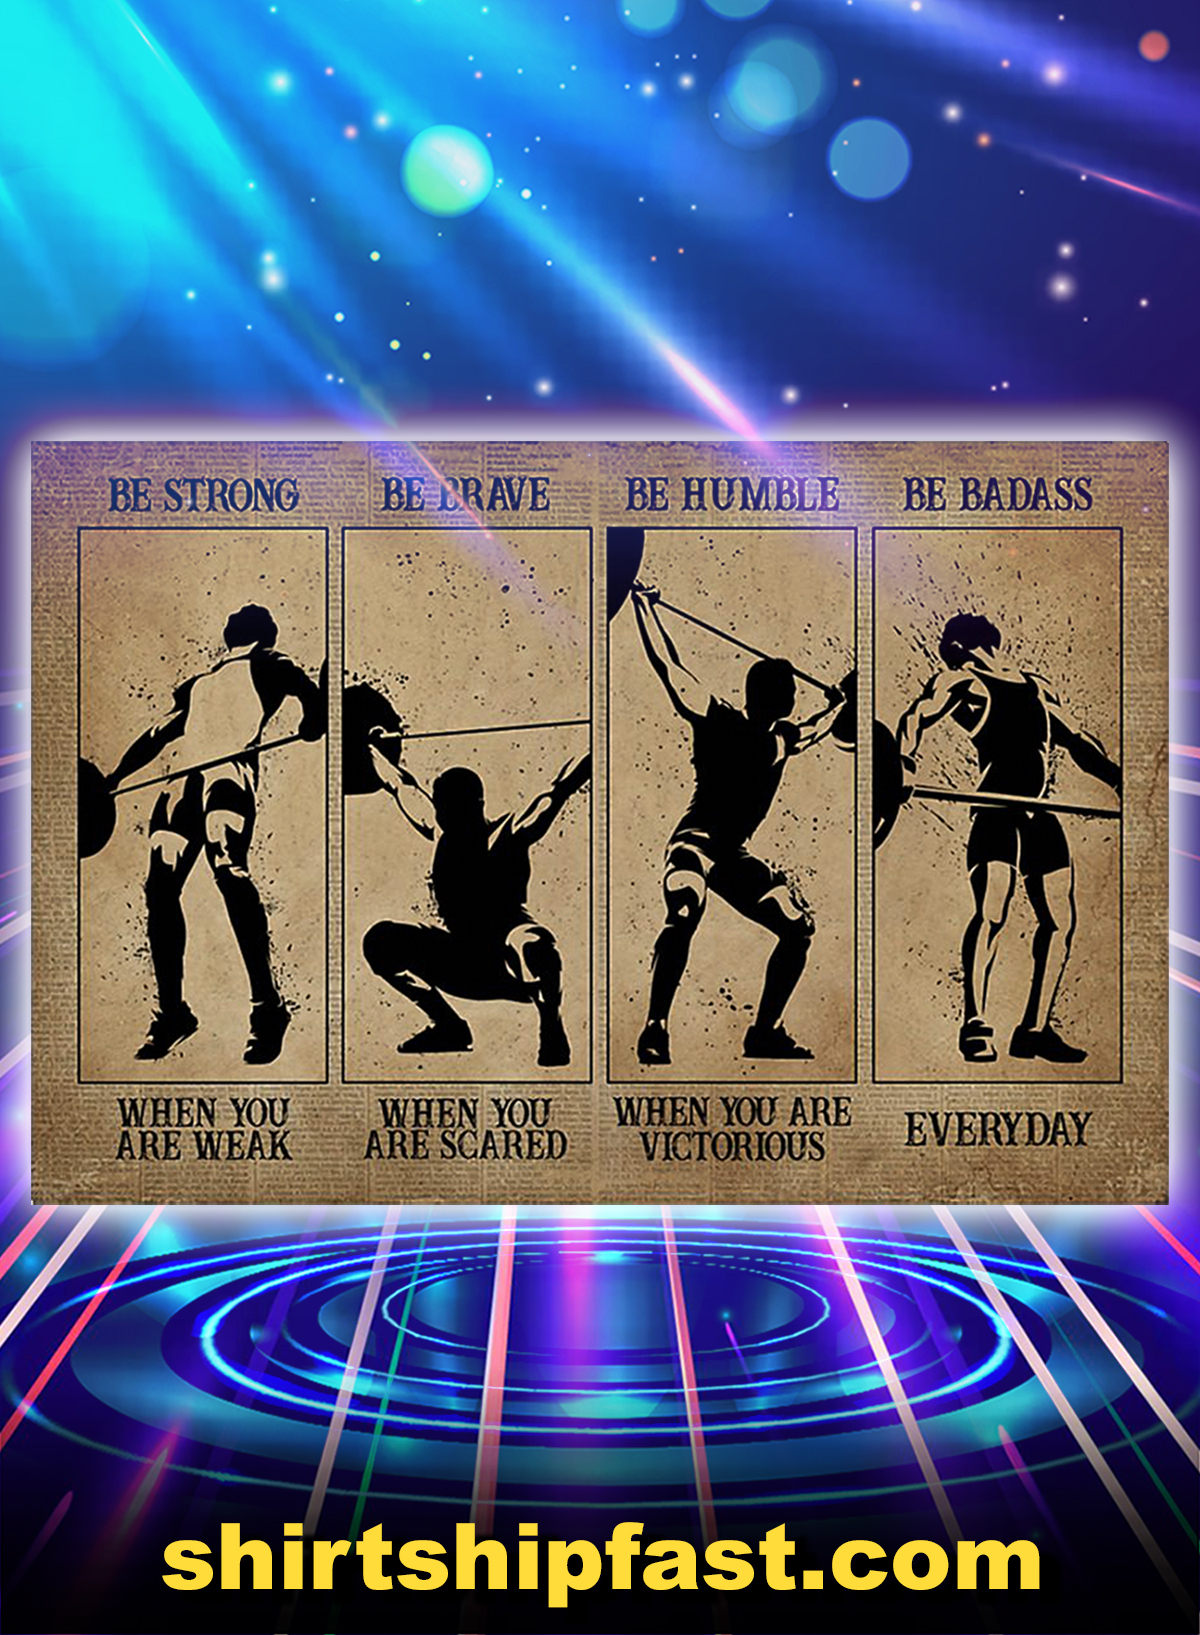 Men weightlifting be strong be brave be humble be badass poster - A1